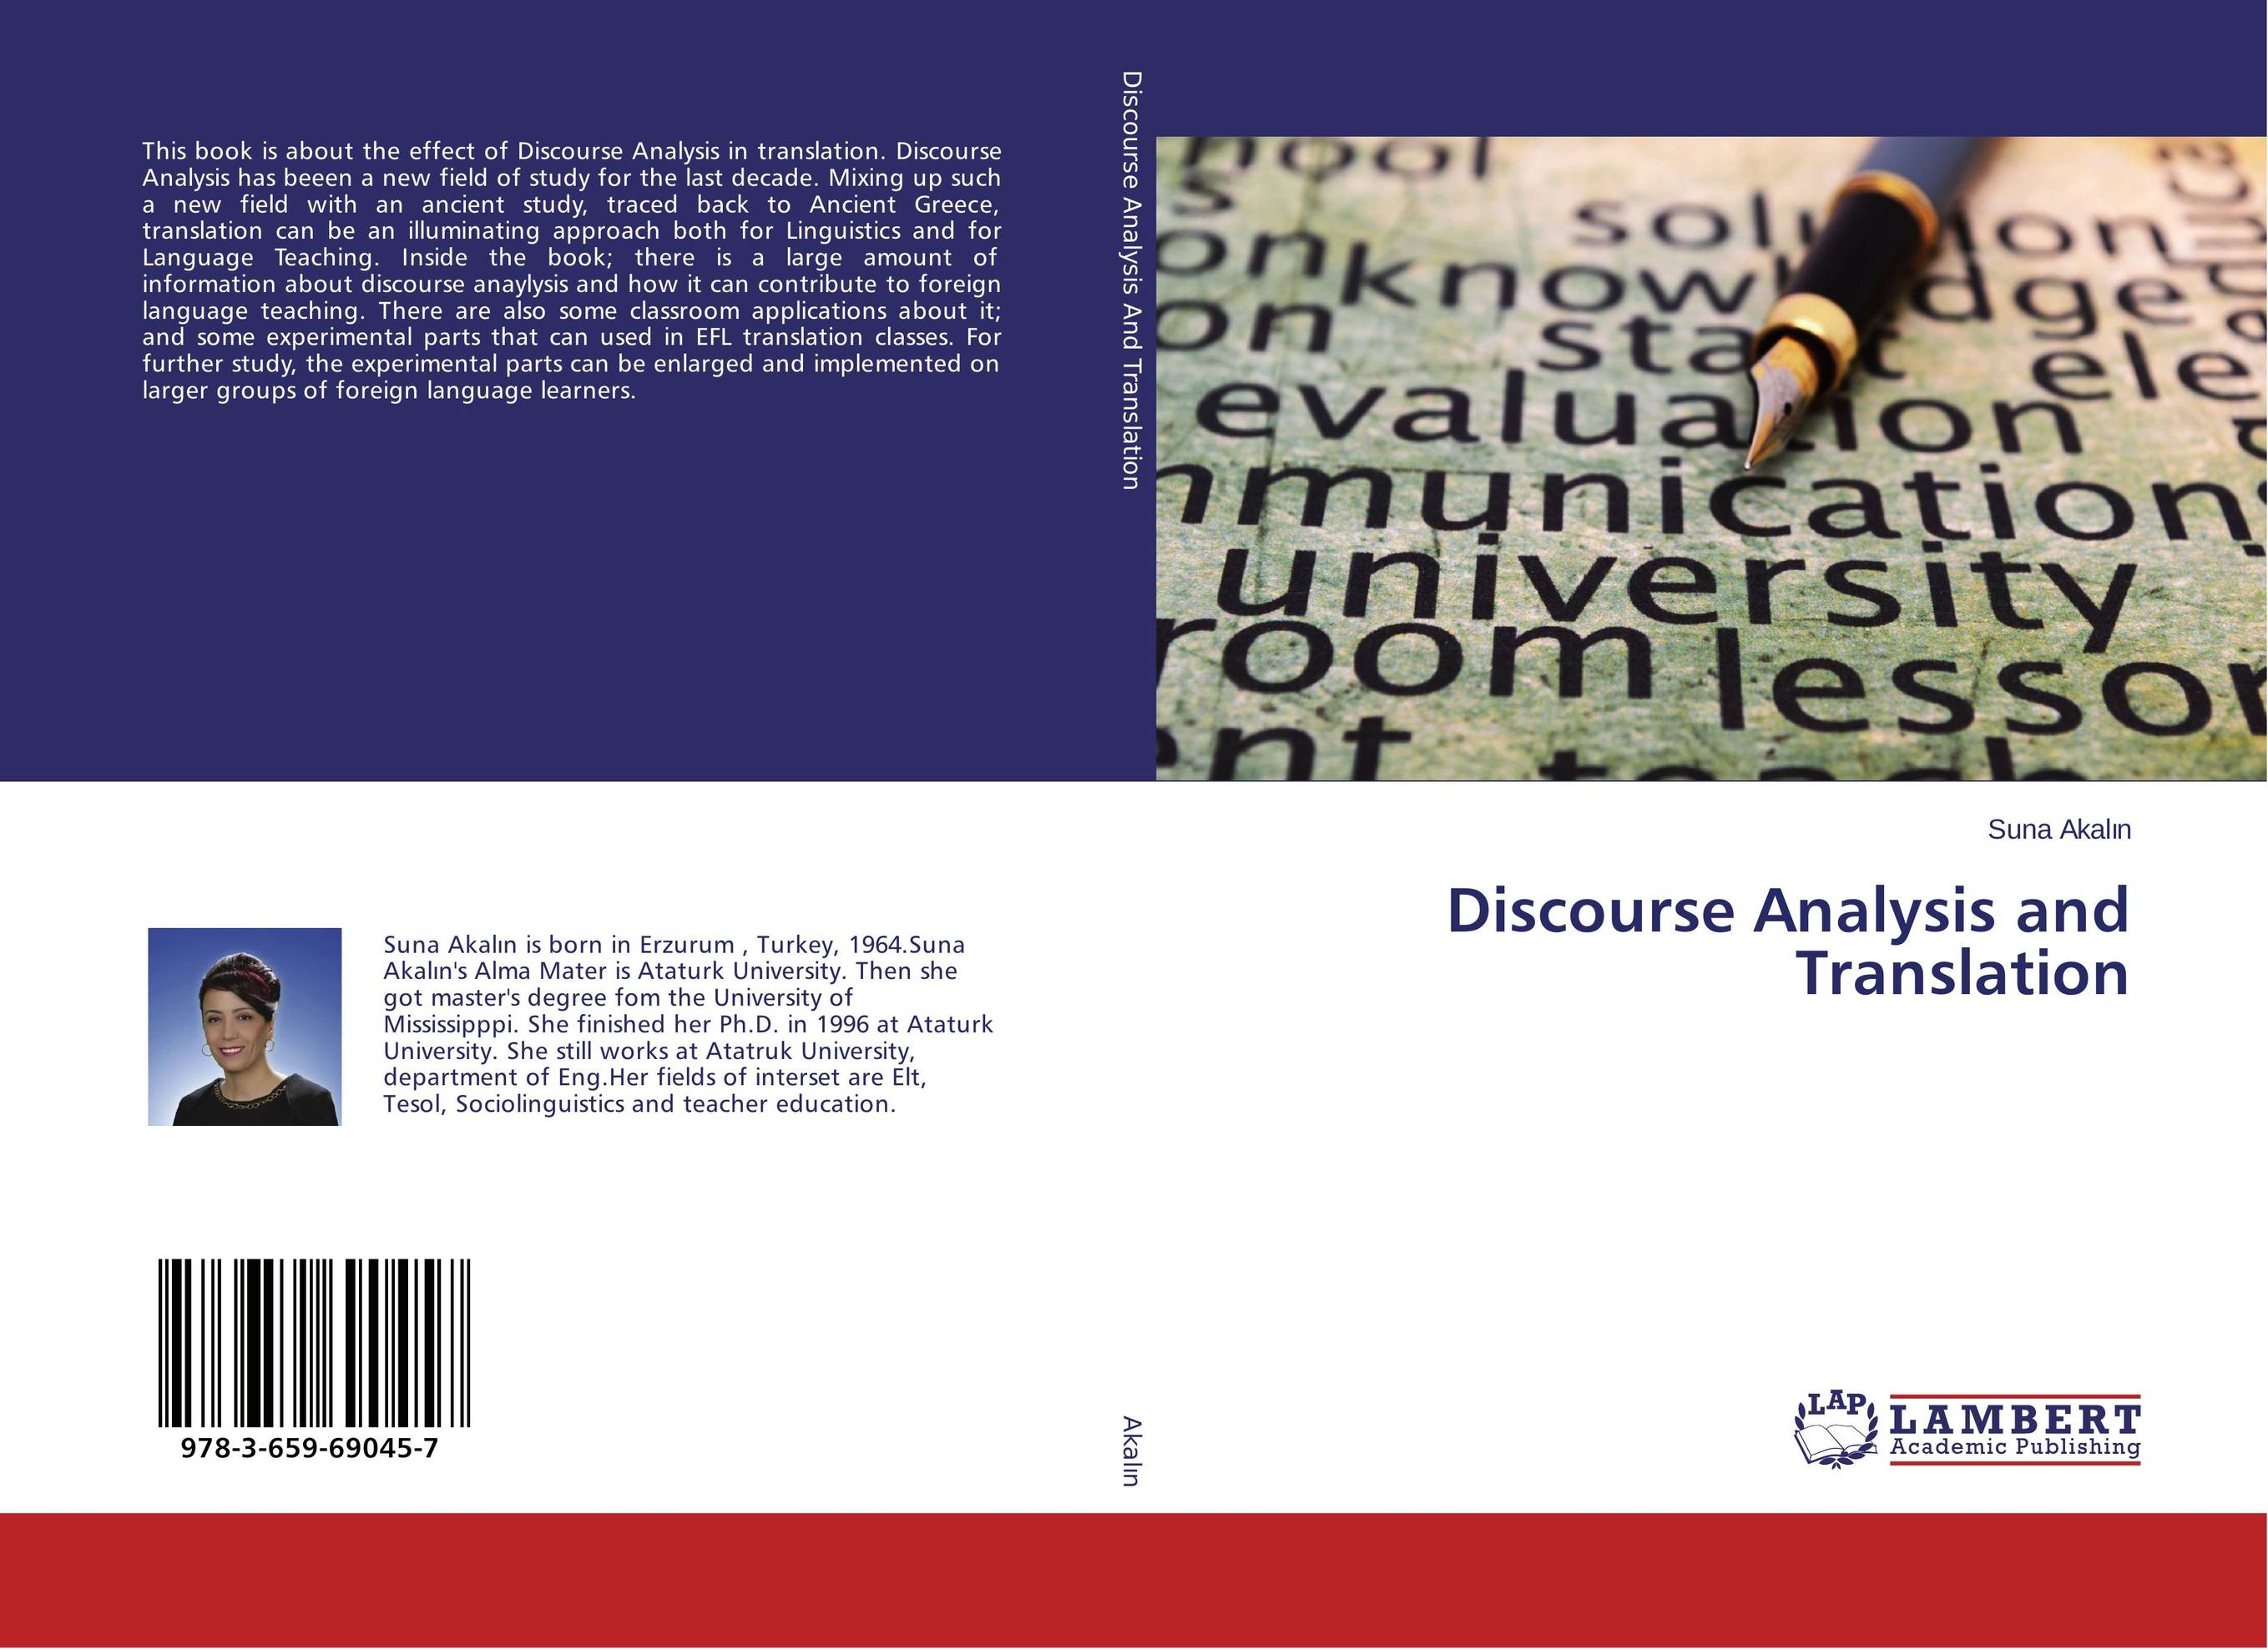 Discourse Analysis and Translation